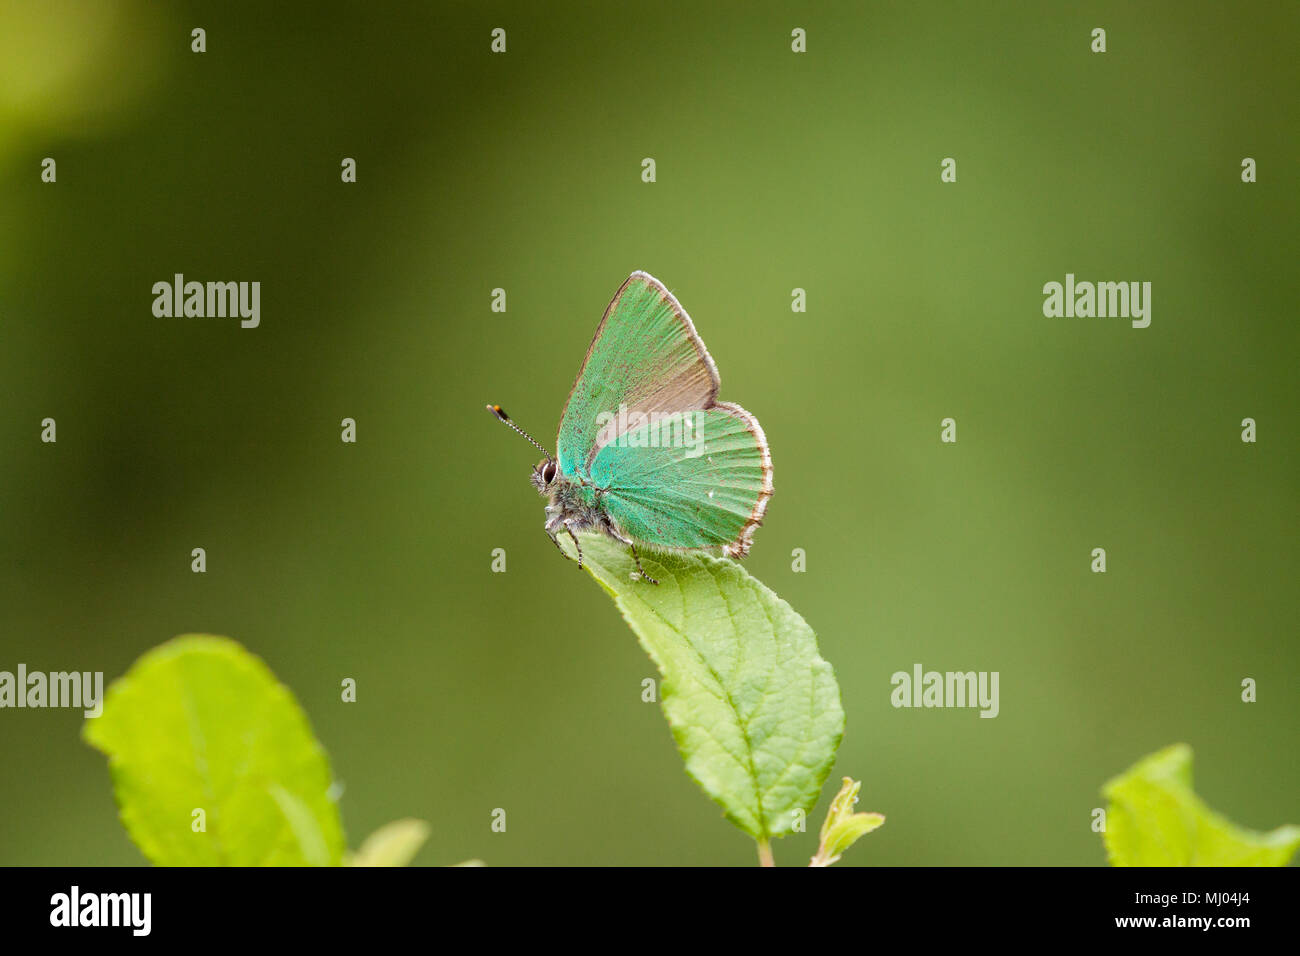 The Green Hairstreak butterfly Callophrys rubi basking on a leaf in the Picos de Europa Northern Spain also a common British butterfly - Stock Image